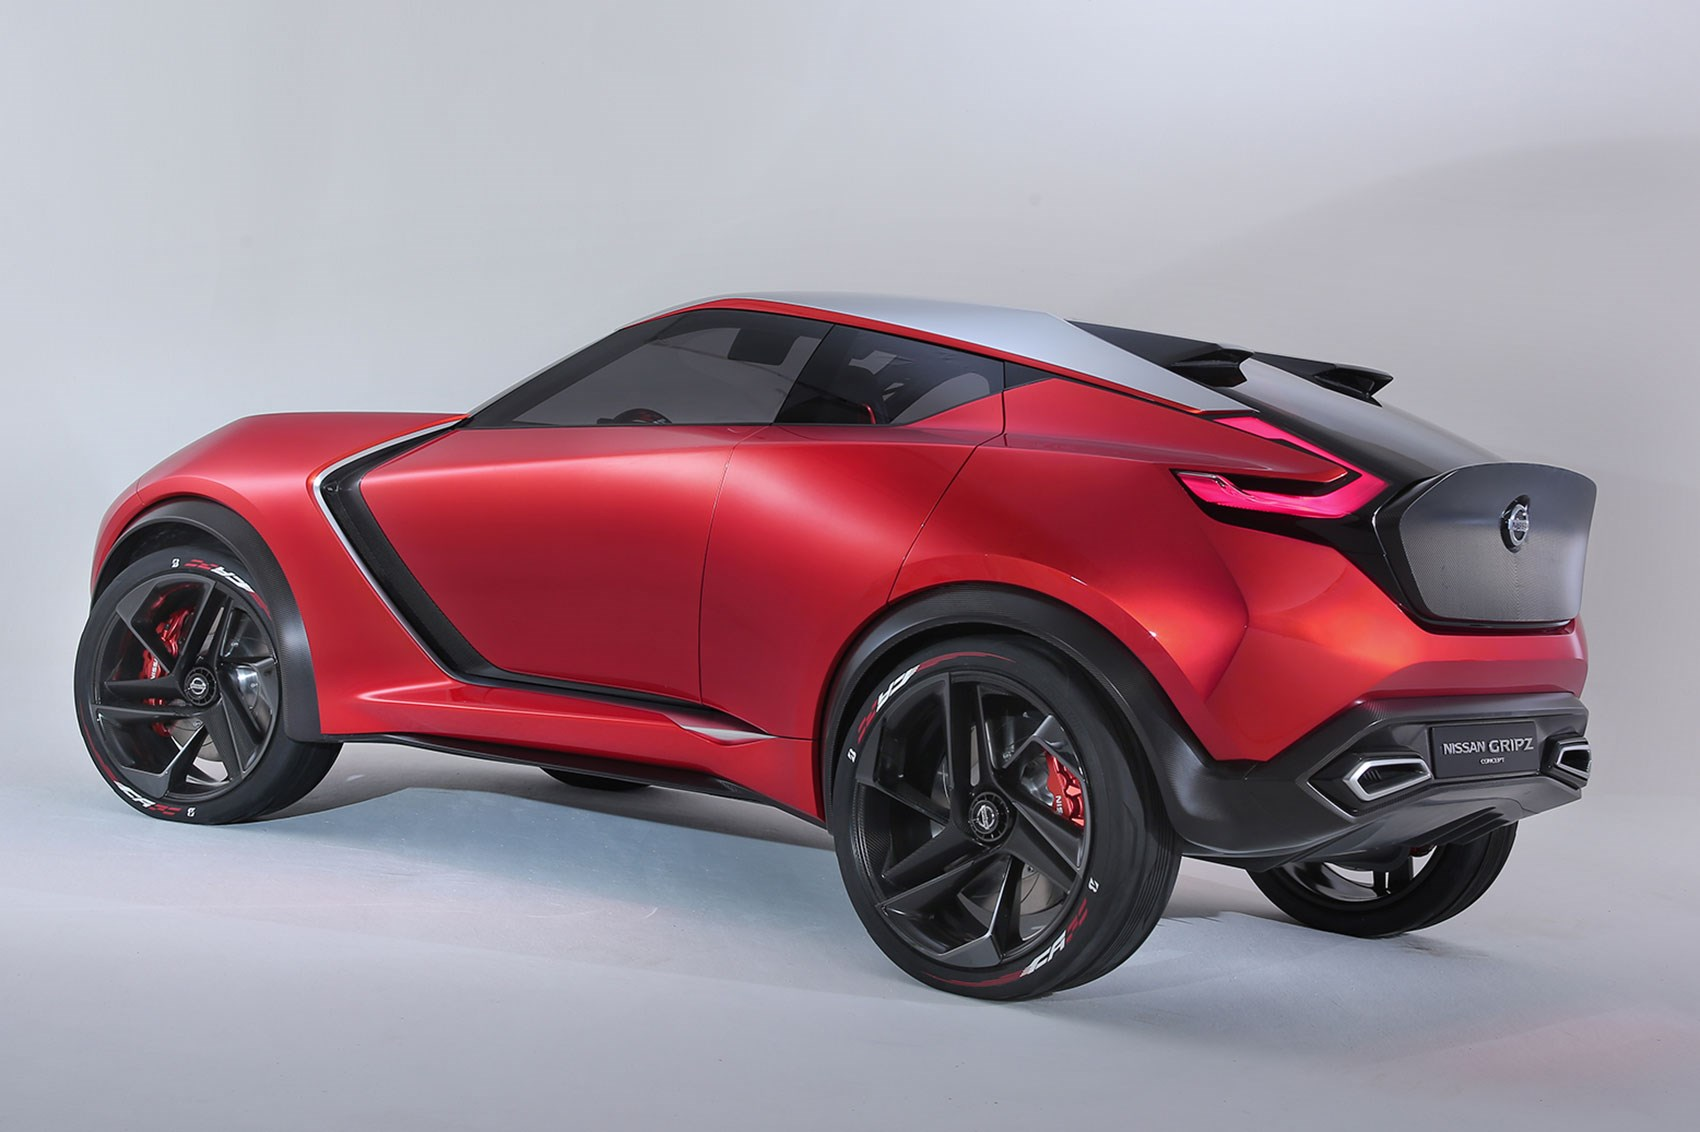 Nissan Gripz concept puts the 'sport' in SUV for Frankfurt 2015 by CAR Magazine